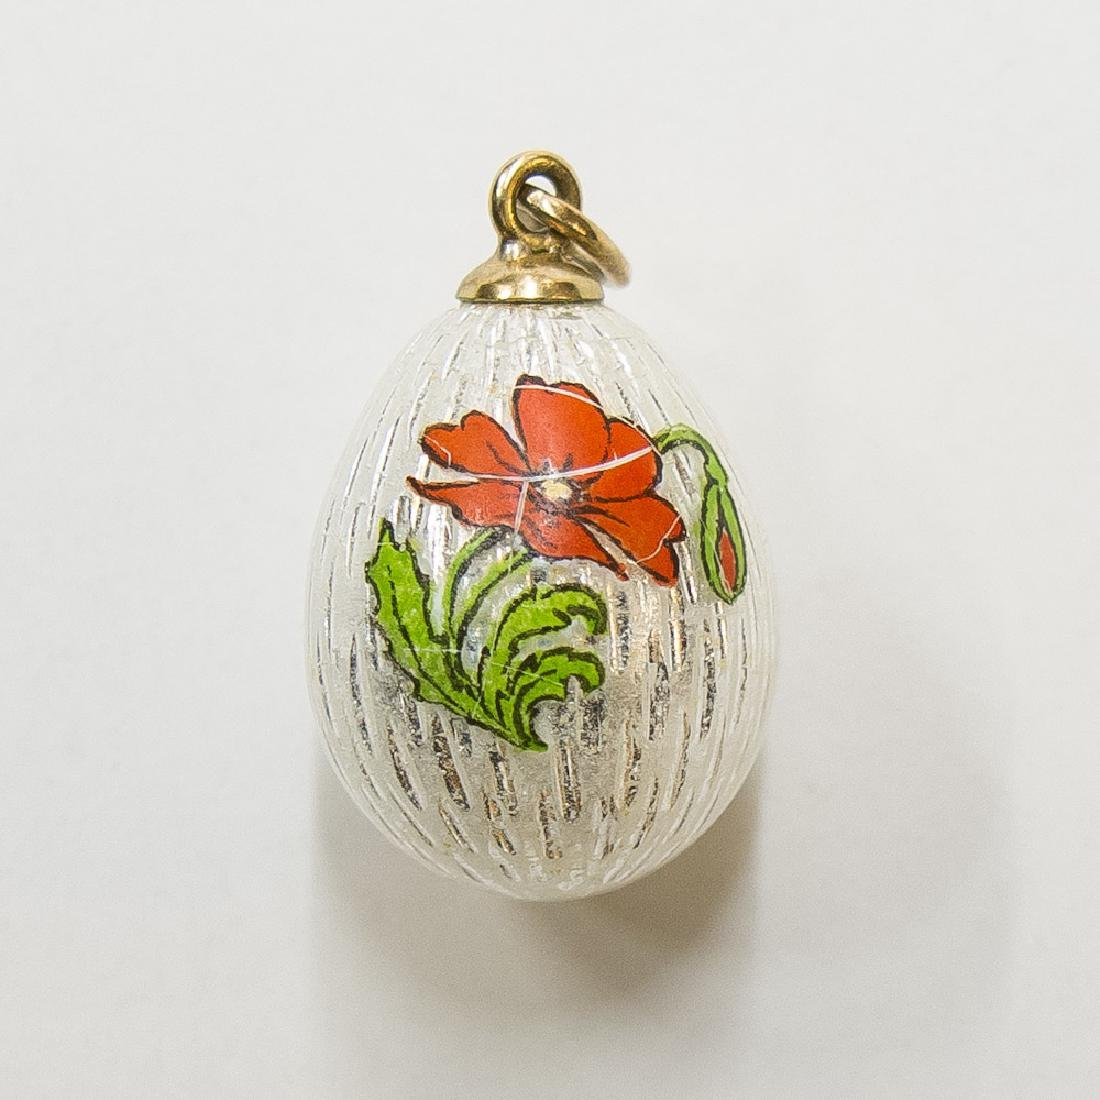 Russian Miniature 14K Gold & Enamel Egg Pendant